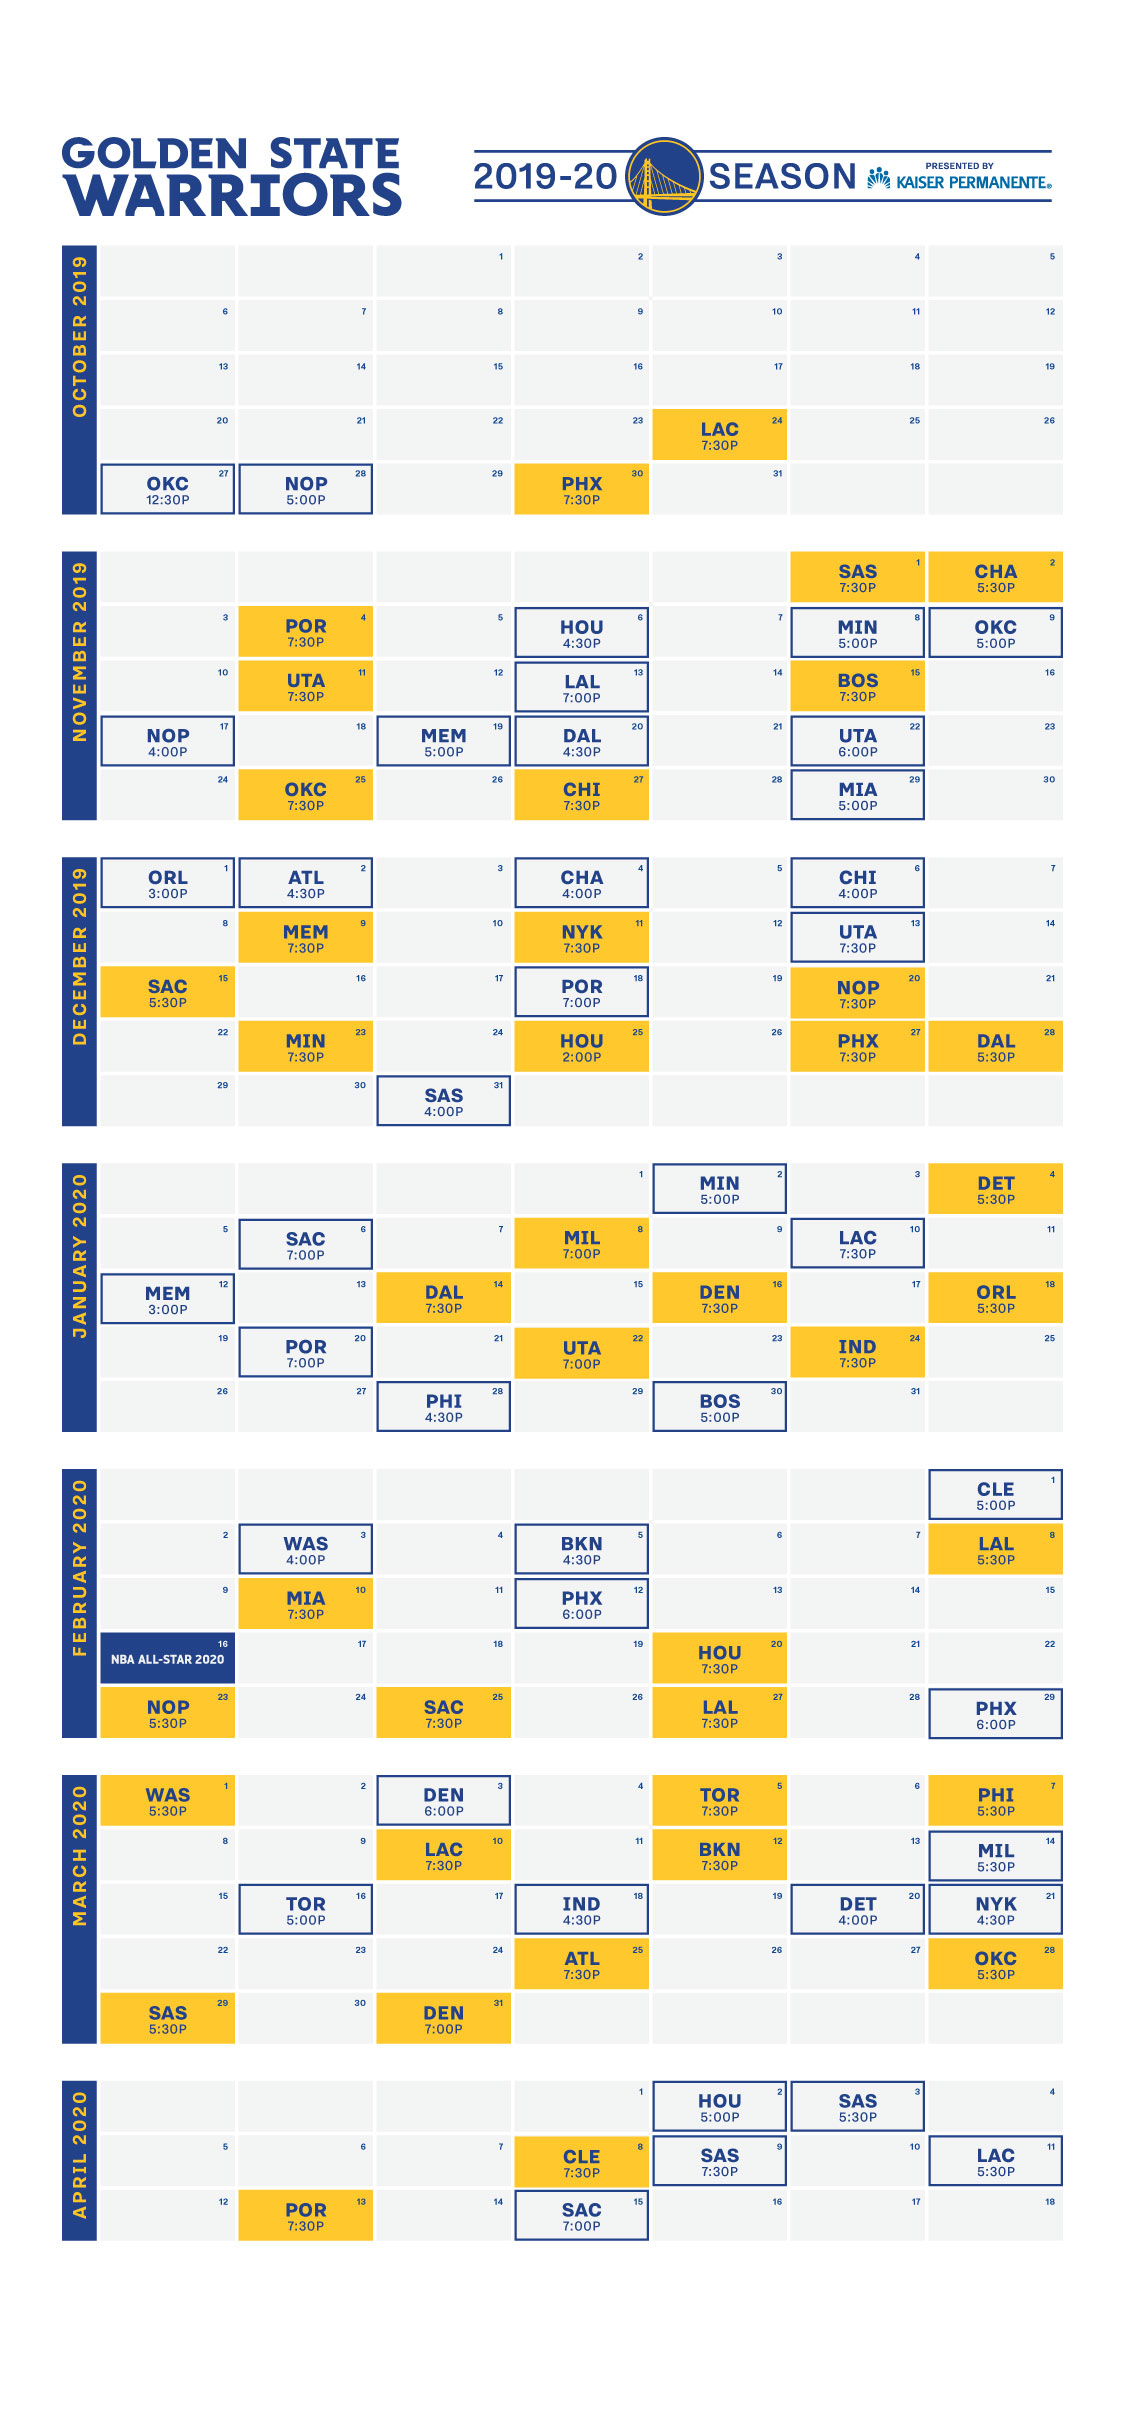 picture regarding Atlanta Braves Schedule Printable called Golden Place Warriors Announce 2019-20 Year Agenda